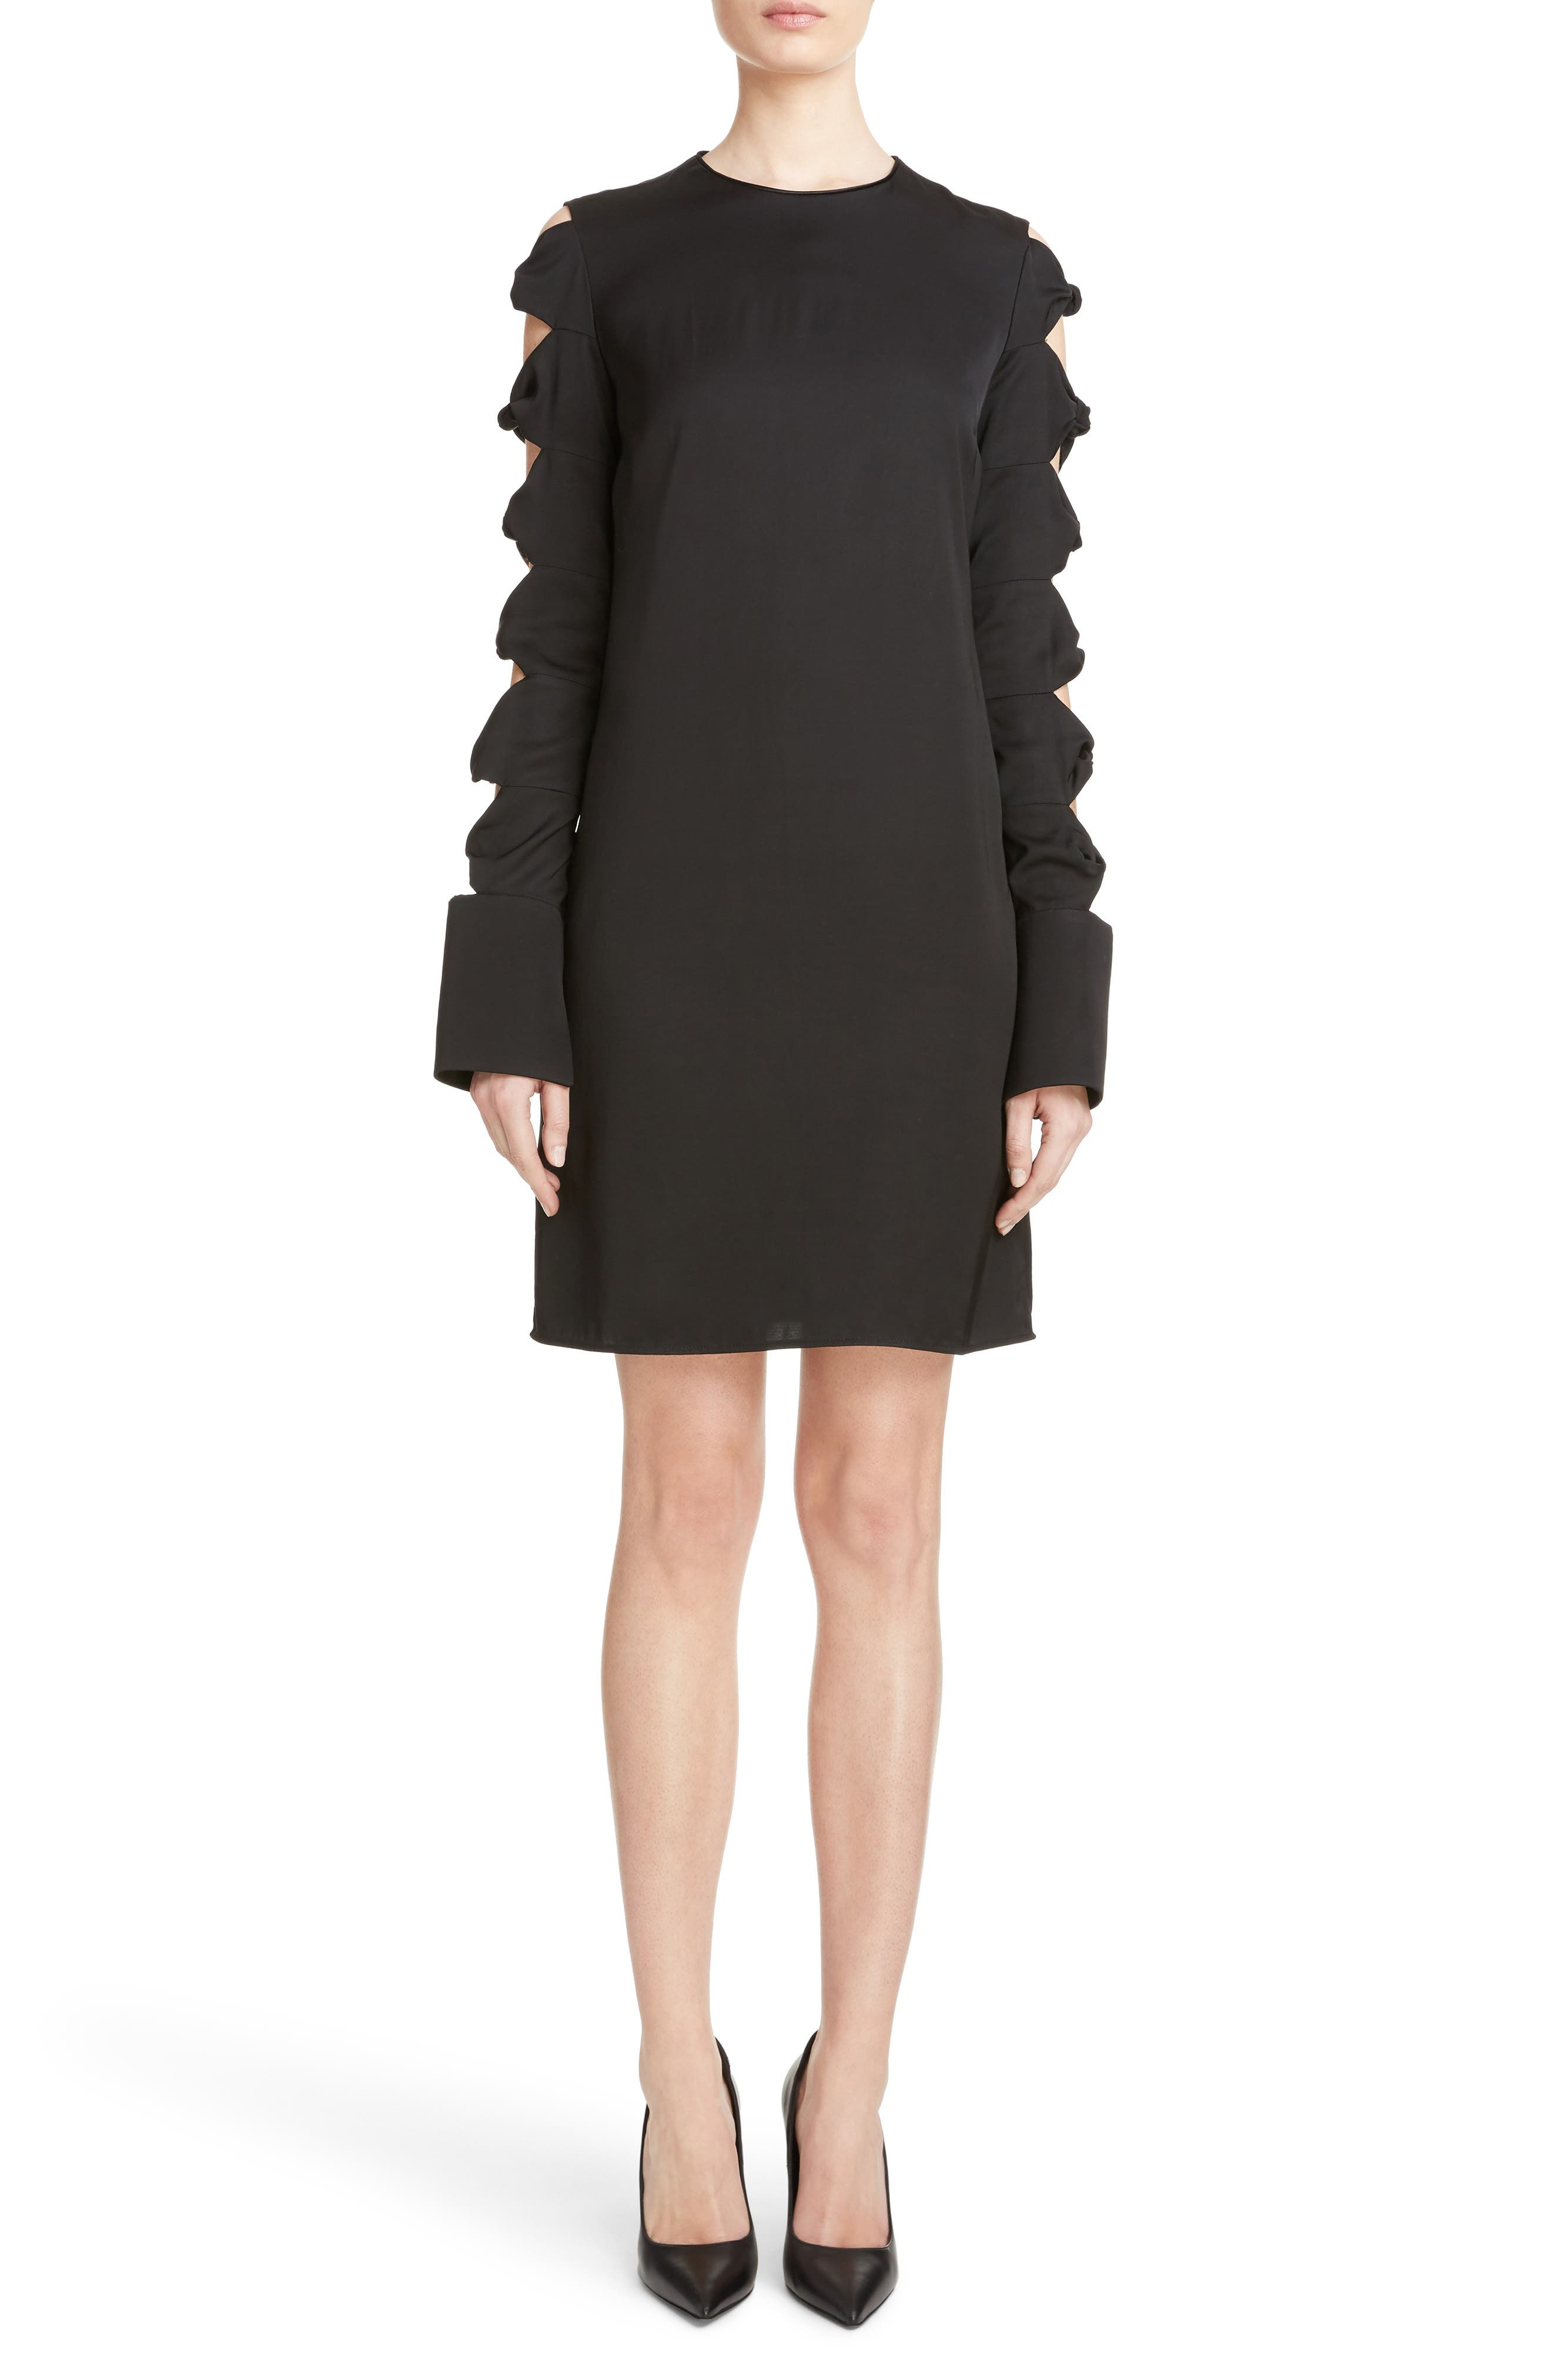 Knotted Sleeve Dress,                             Main thumbnail 1, color,                             001